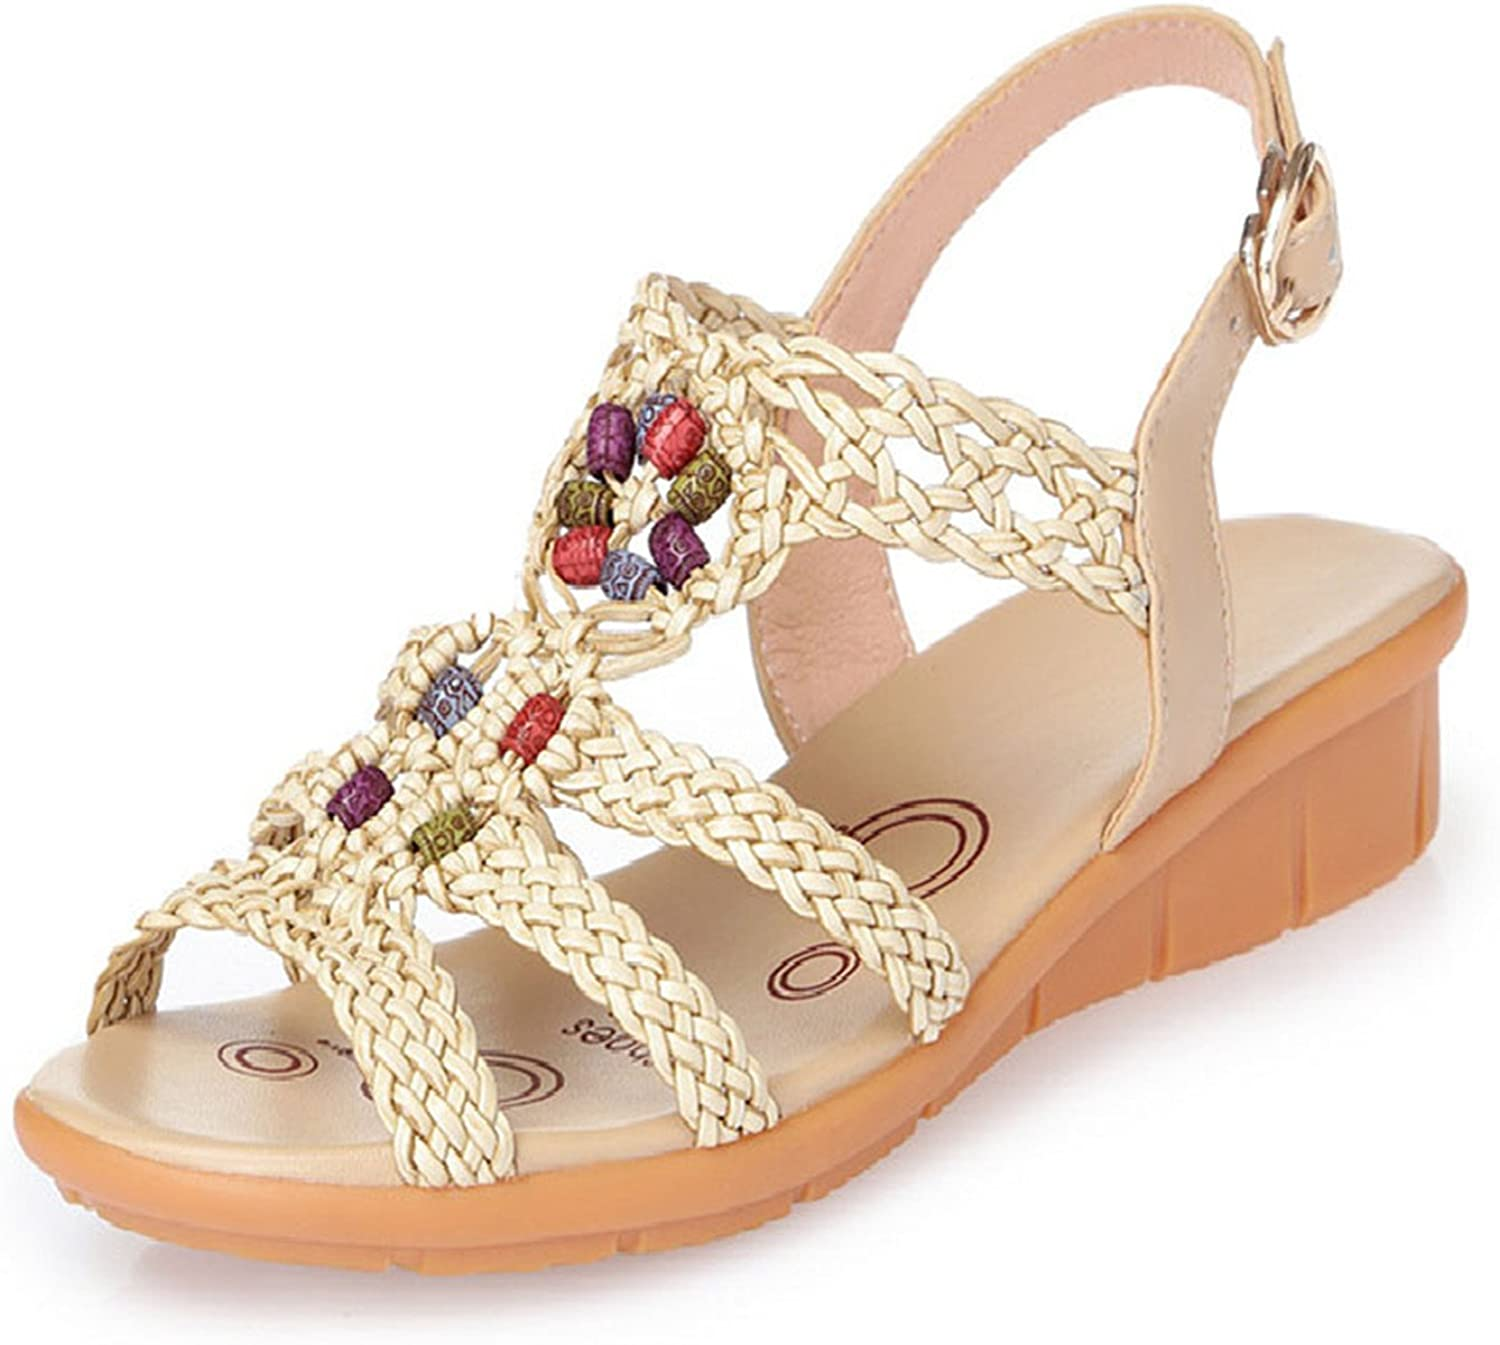 New Summer Women Sandals Casual Straw Rope Sandals for Women Fashion Women Open Toe Fisherman shoes Female Flats